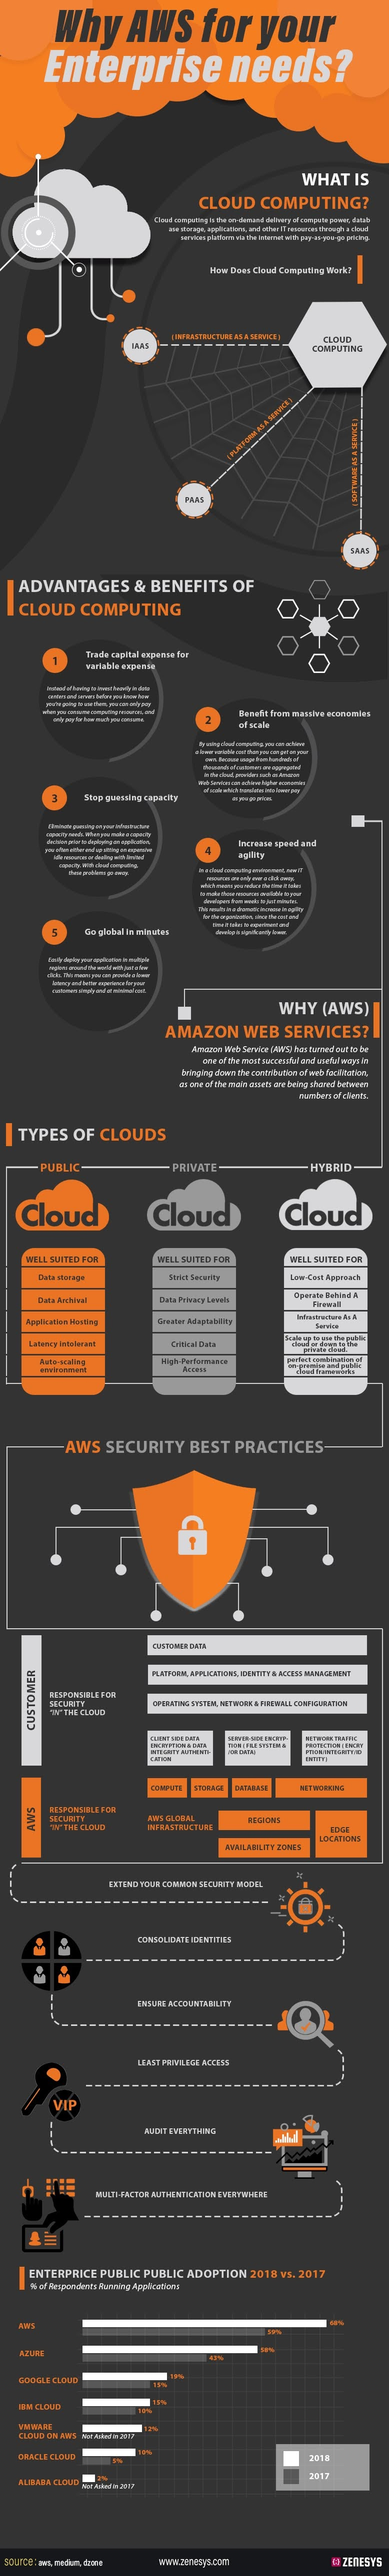 why-aws-for-your-enterprise-needs-infographic